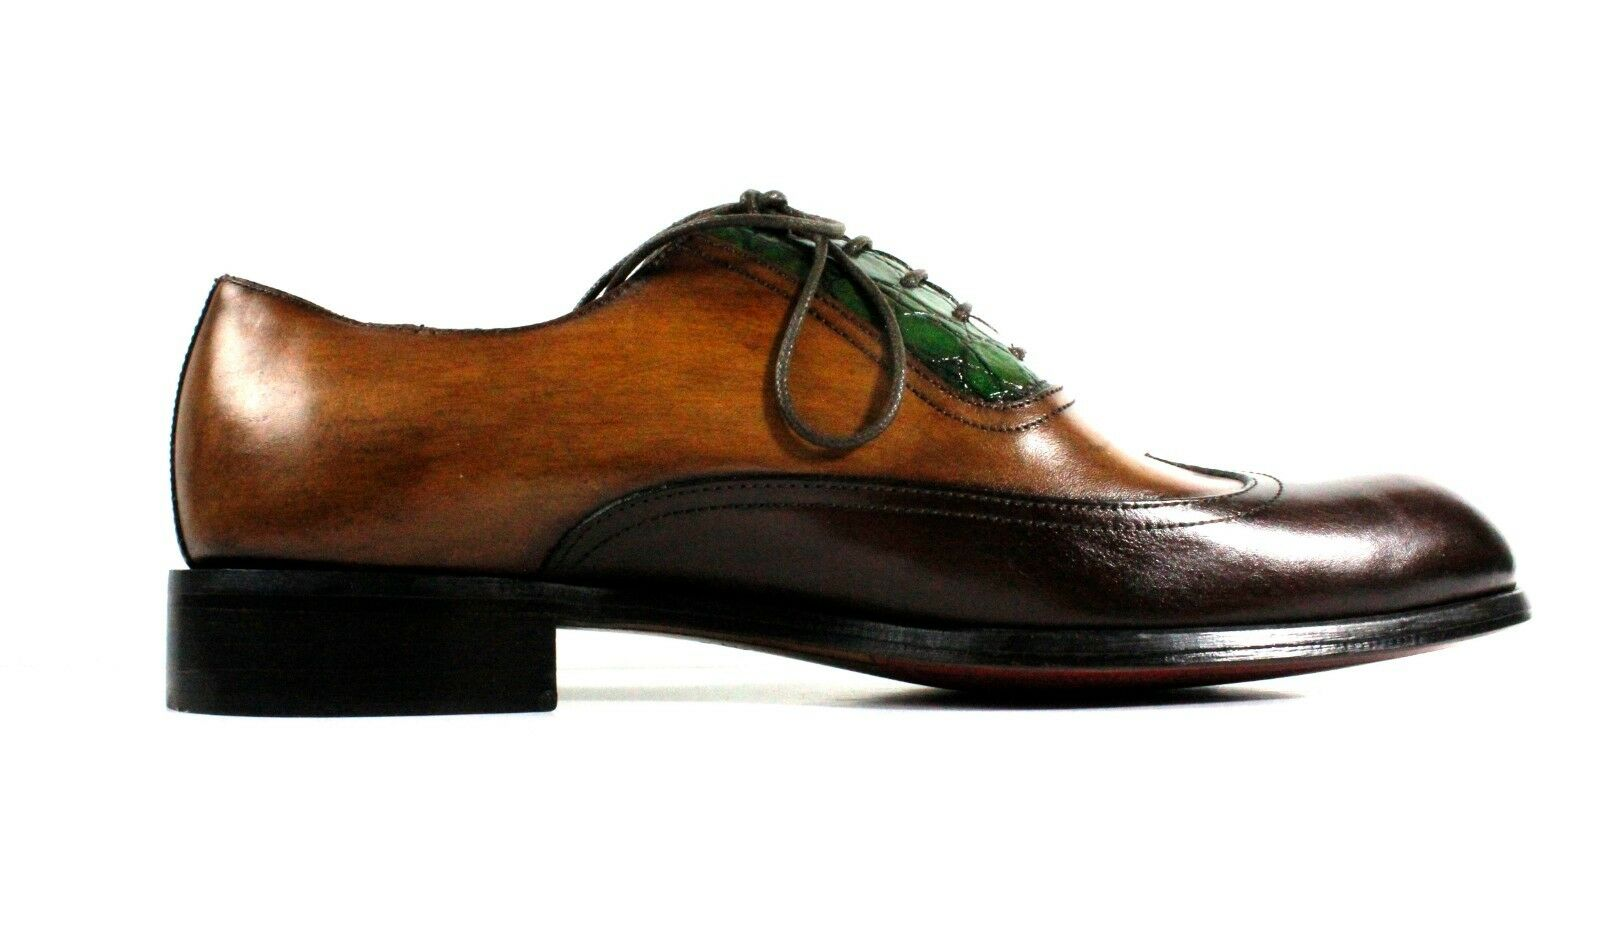 IVAN TROY Trio Trio Trio Farbes Handmade Italian Leather Dress schuhe  Oxford Office schuhe bb2d46